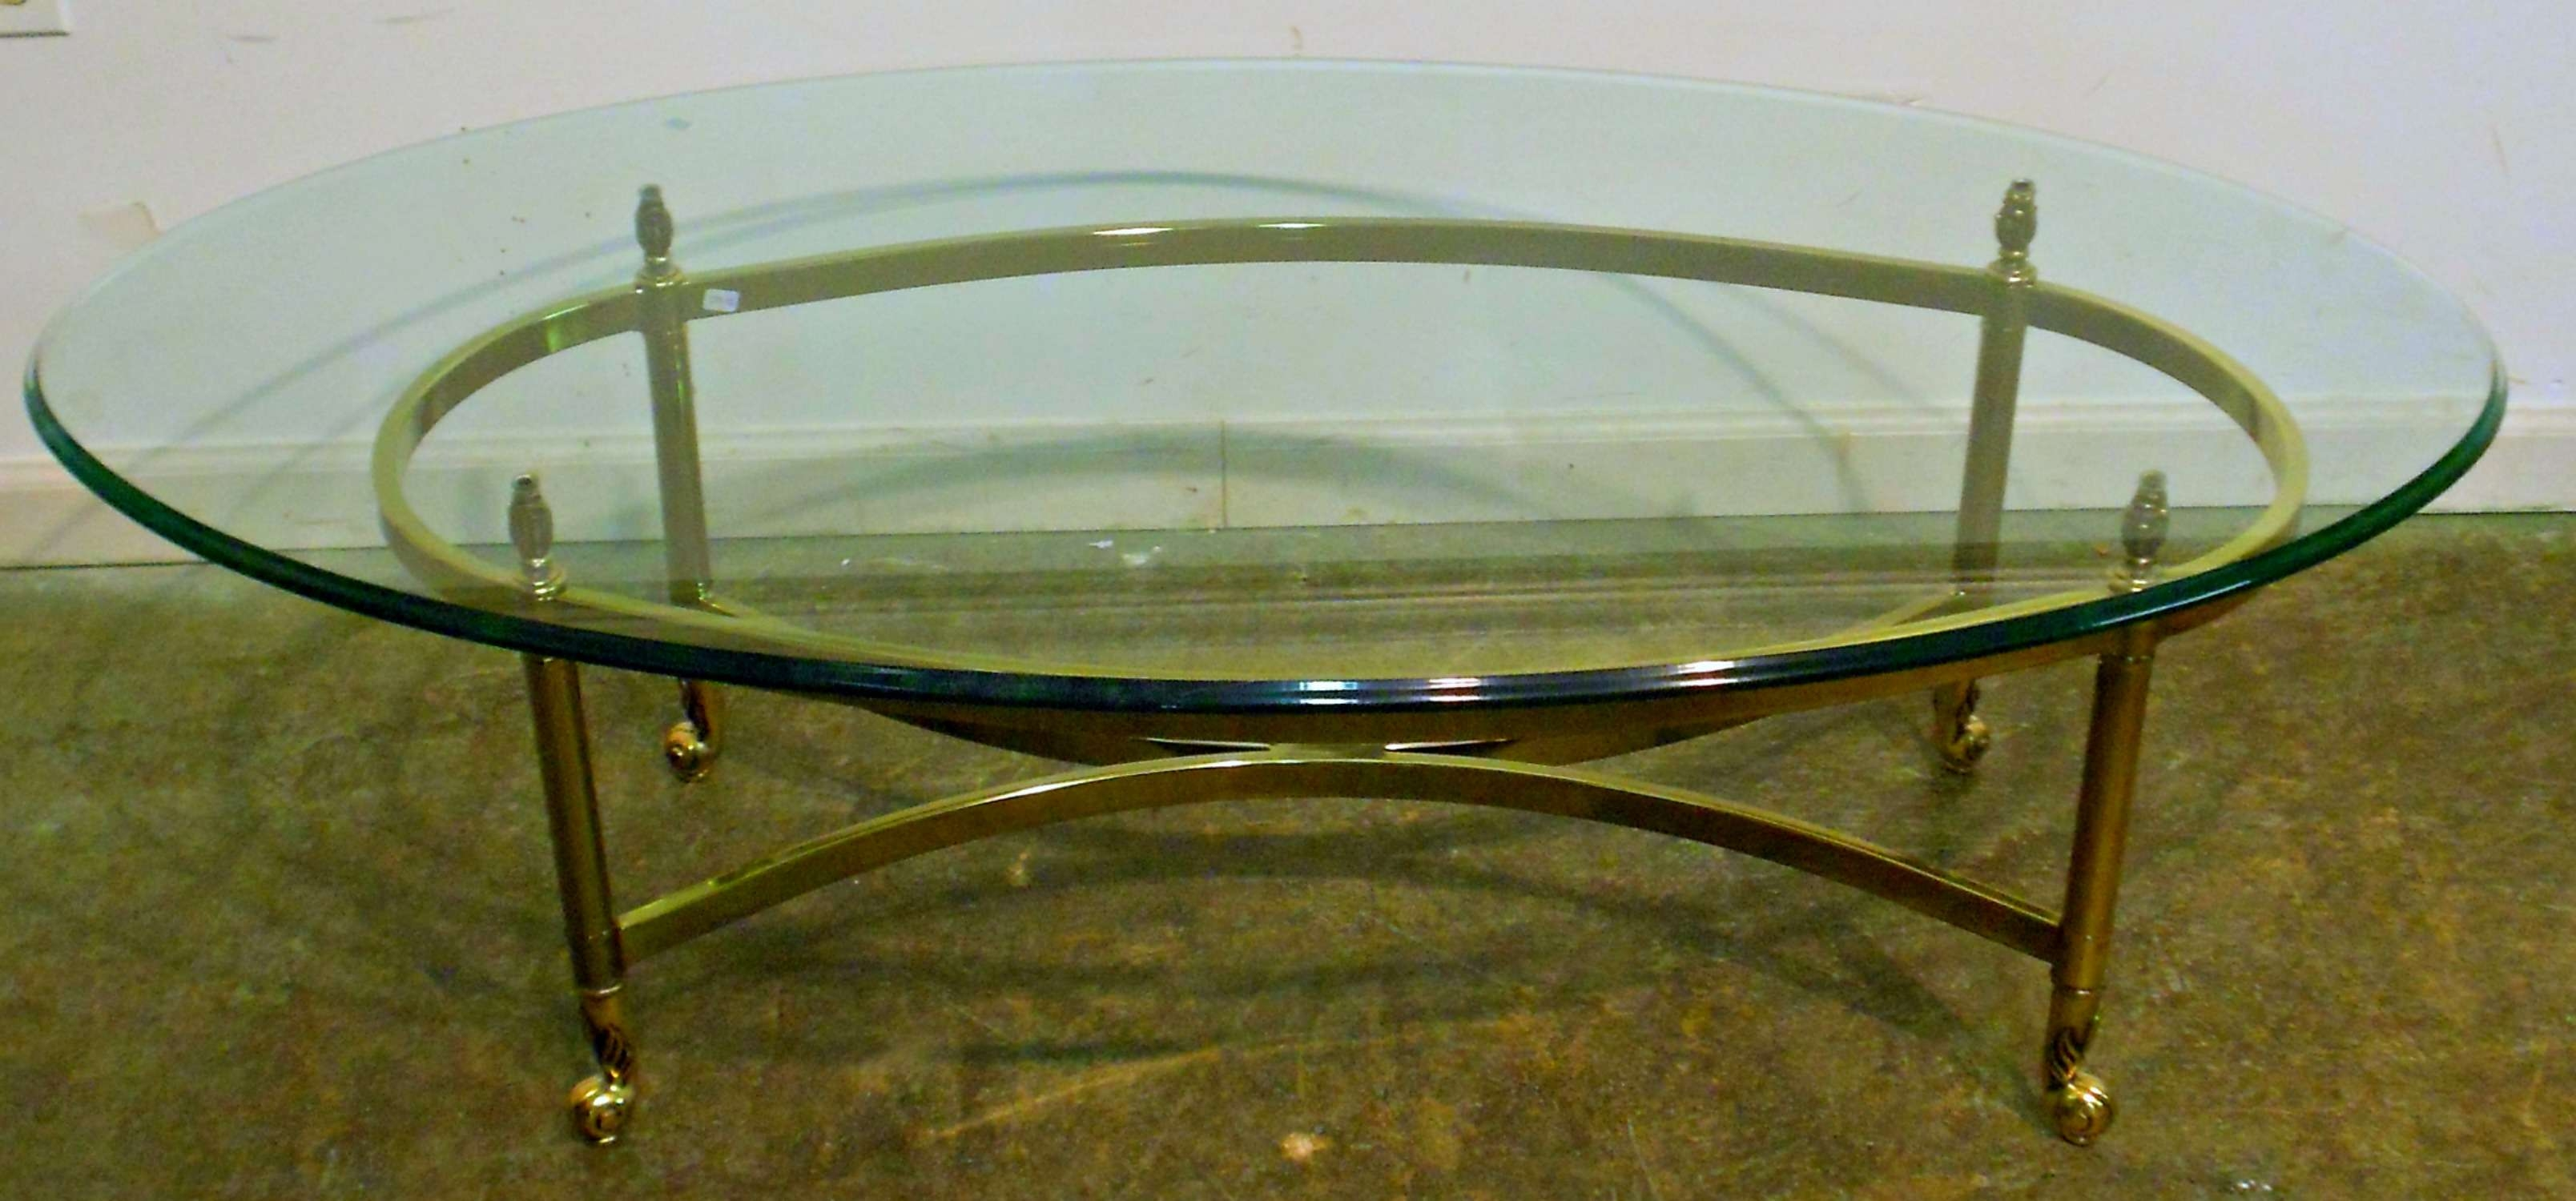 Decorations : Furniture Vintage Retro Style Coffee Table With With Latest Vintage Glass Coffee Tables (View 15 of 20)